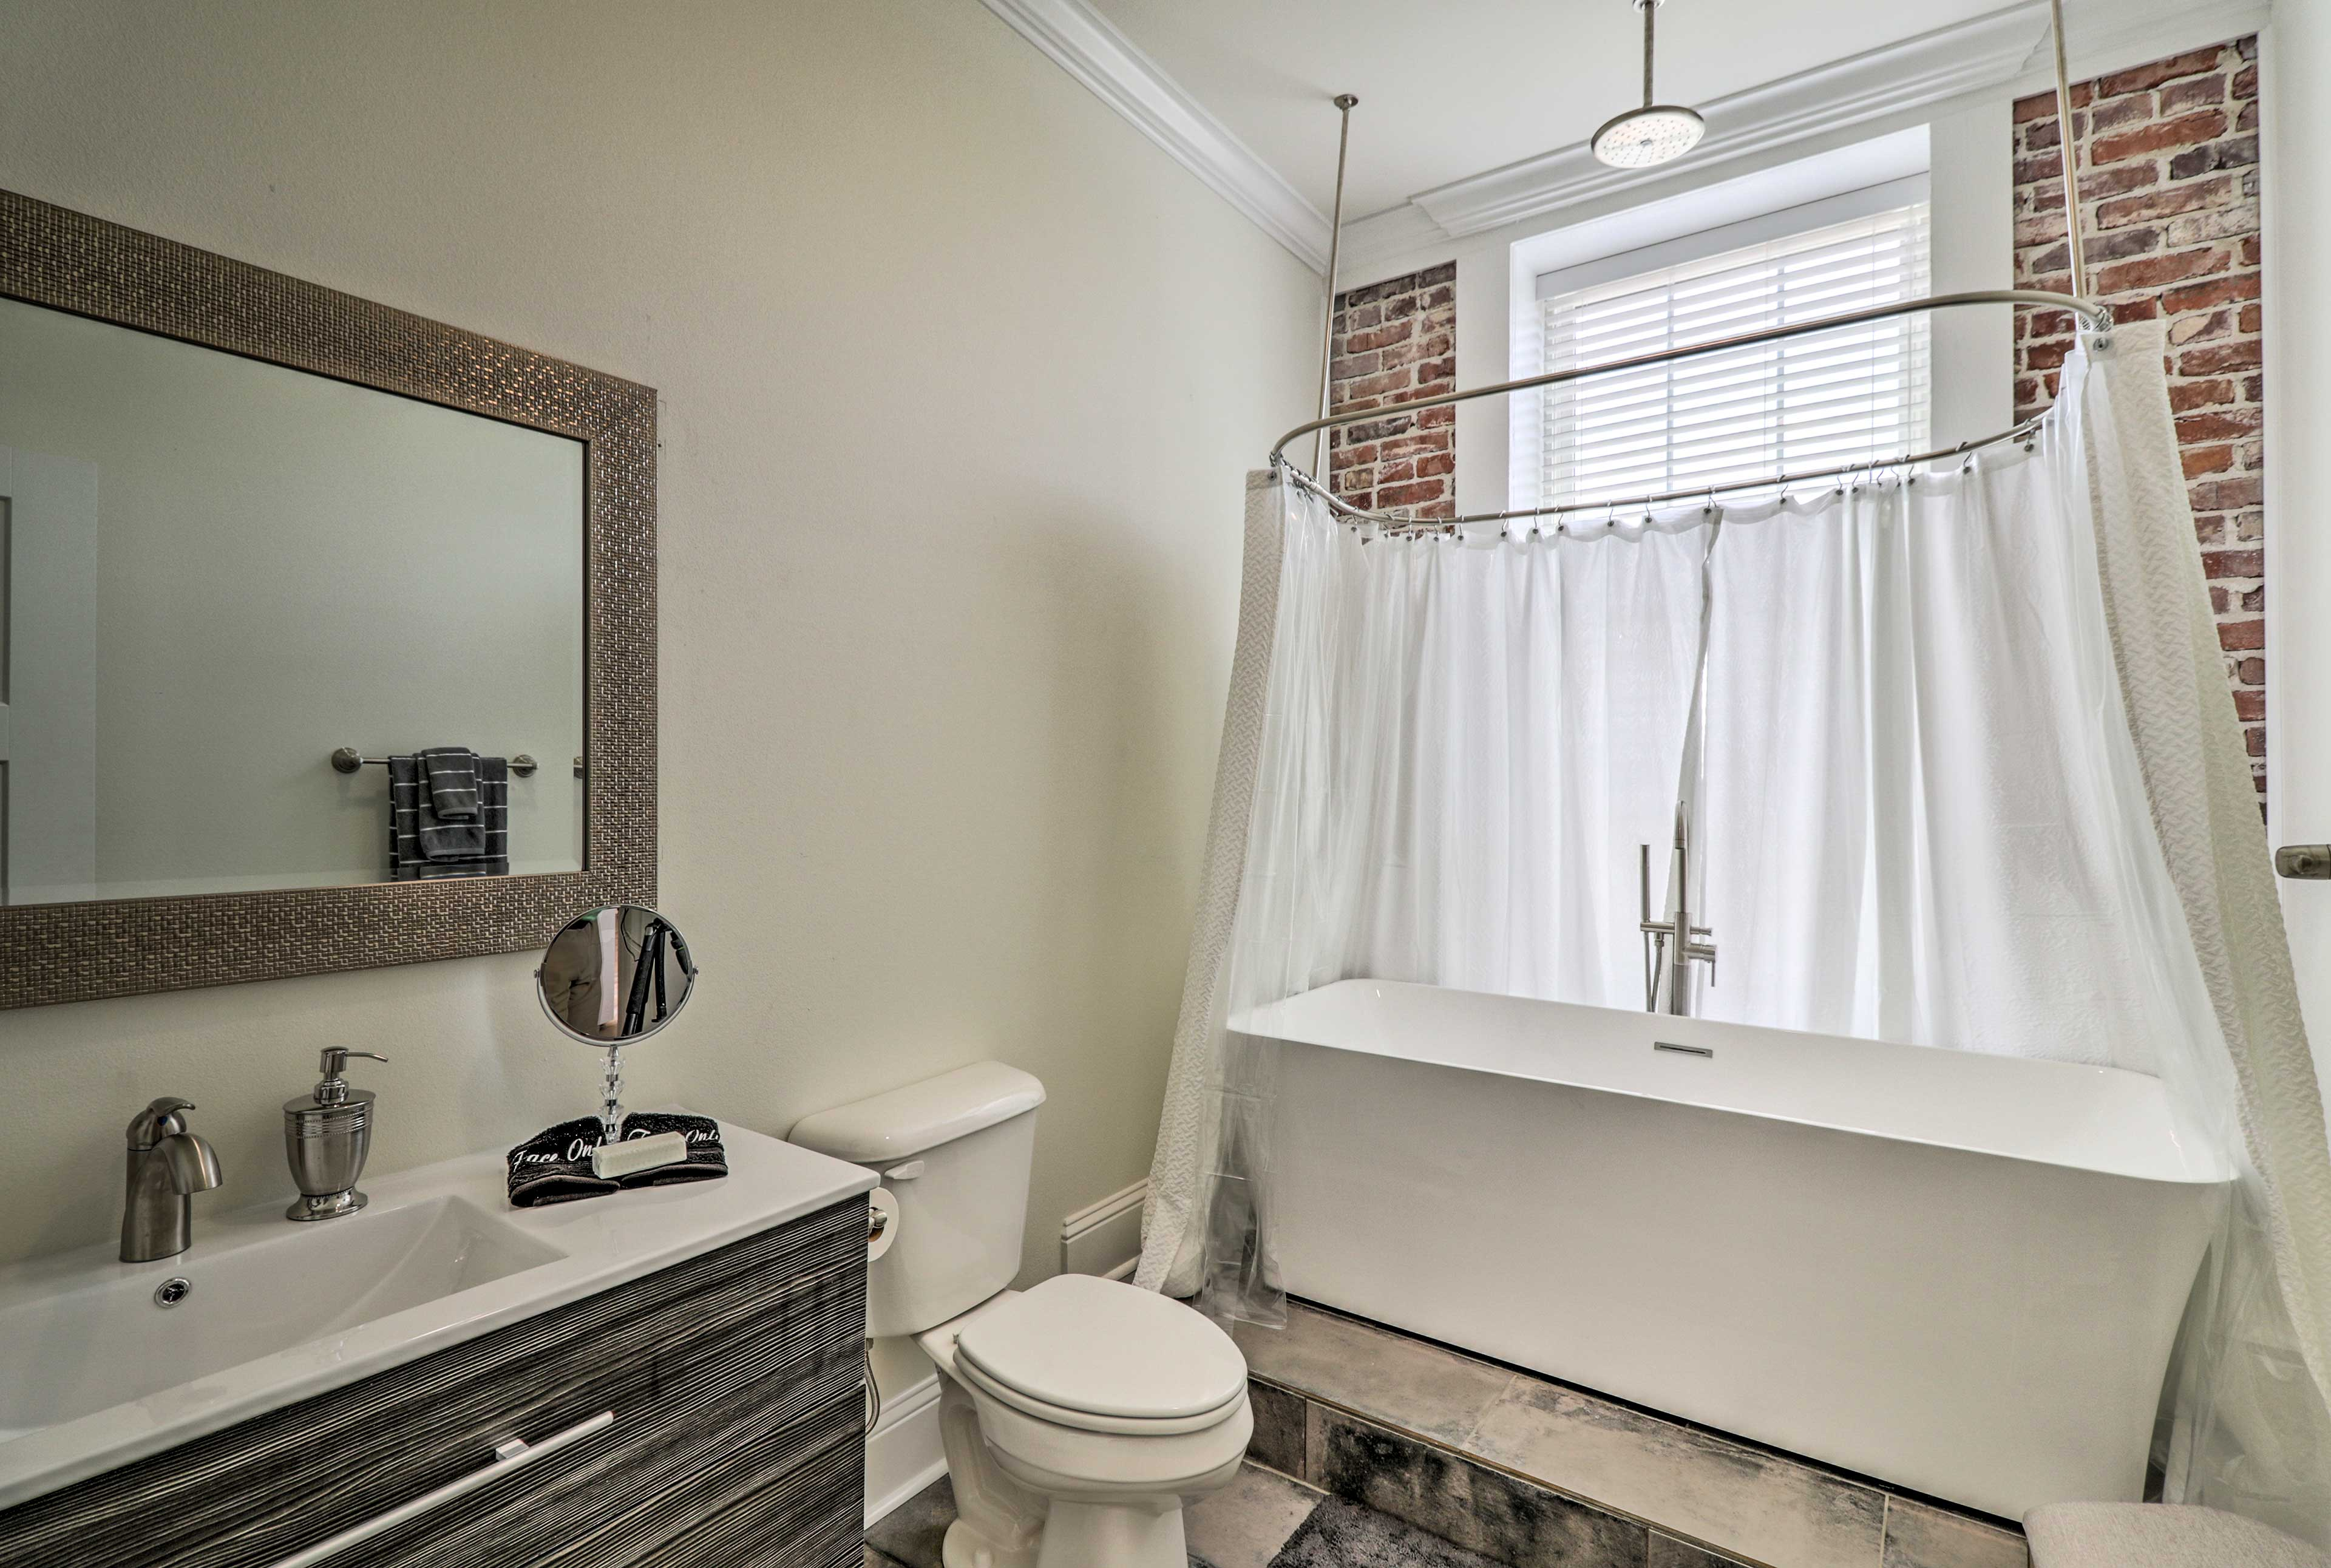 This full en-suite bathroom includes a tub/shower combo.